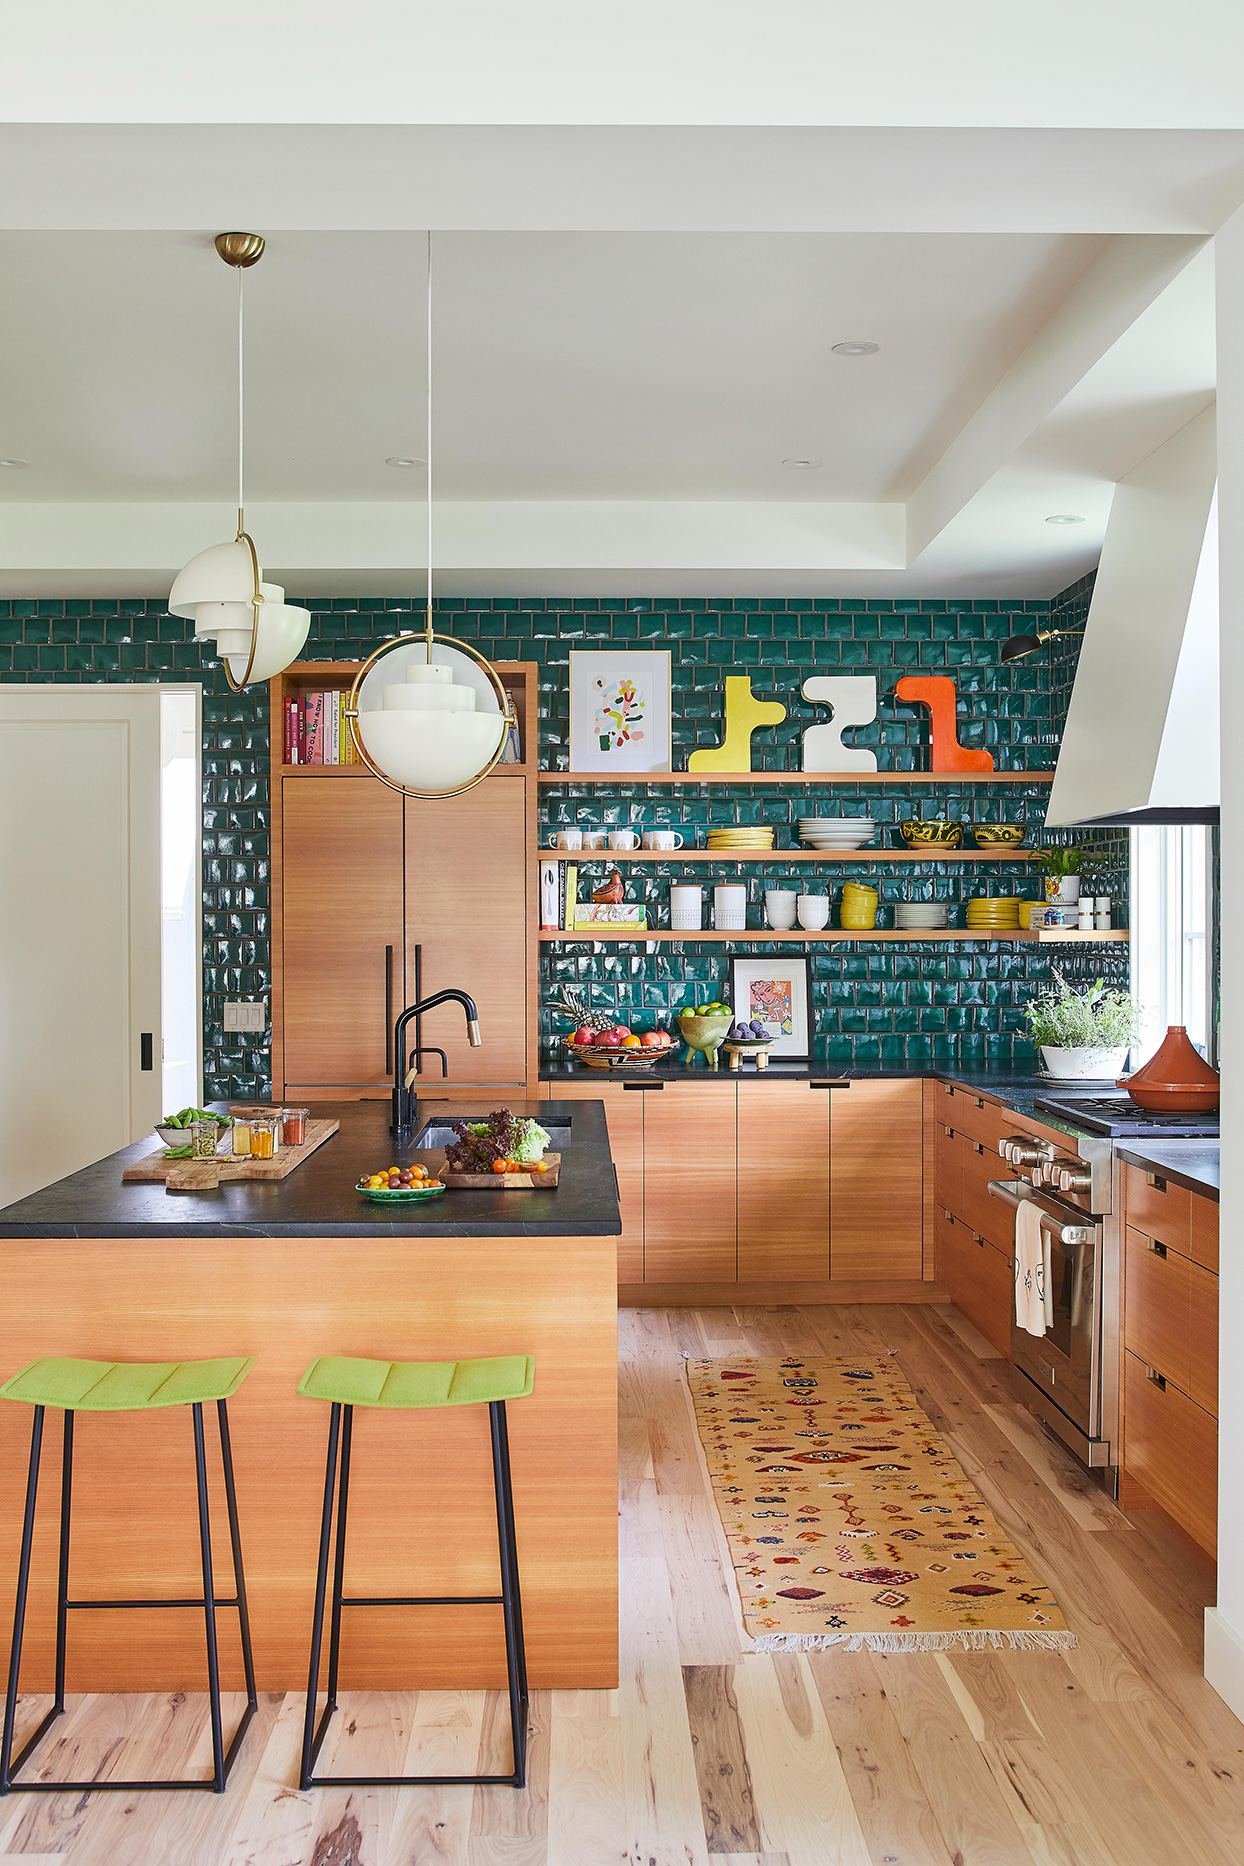 dark green tiled kitchen with larch-wood cabinets with cutout handles